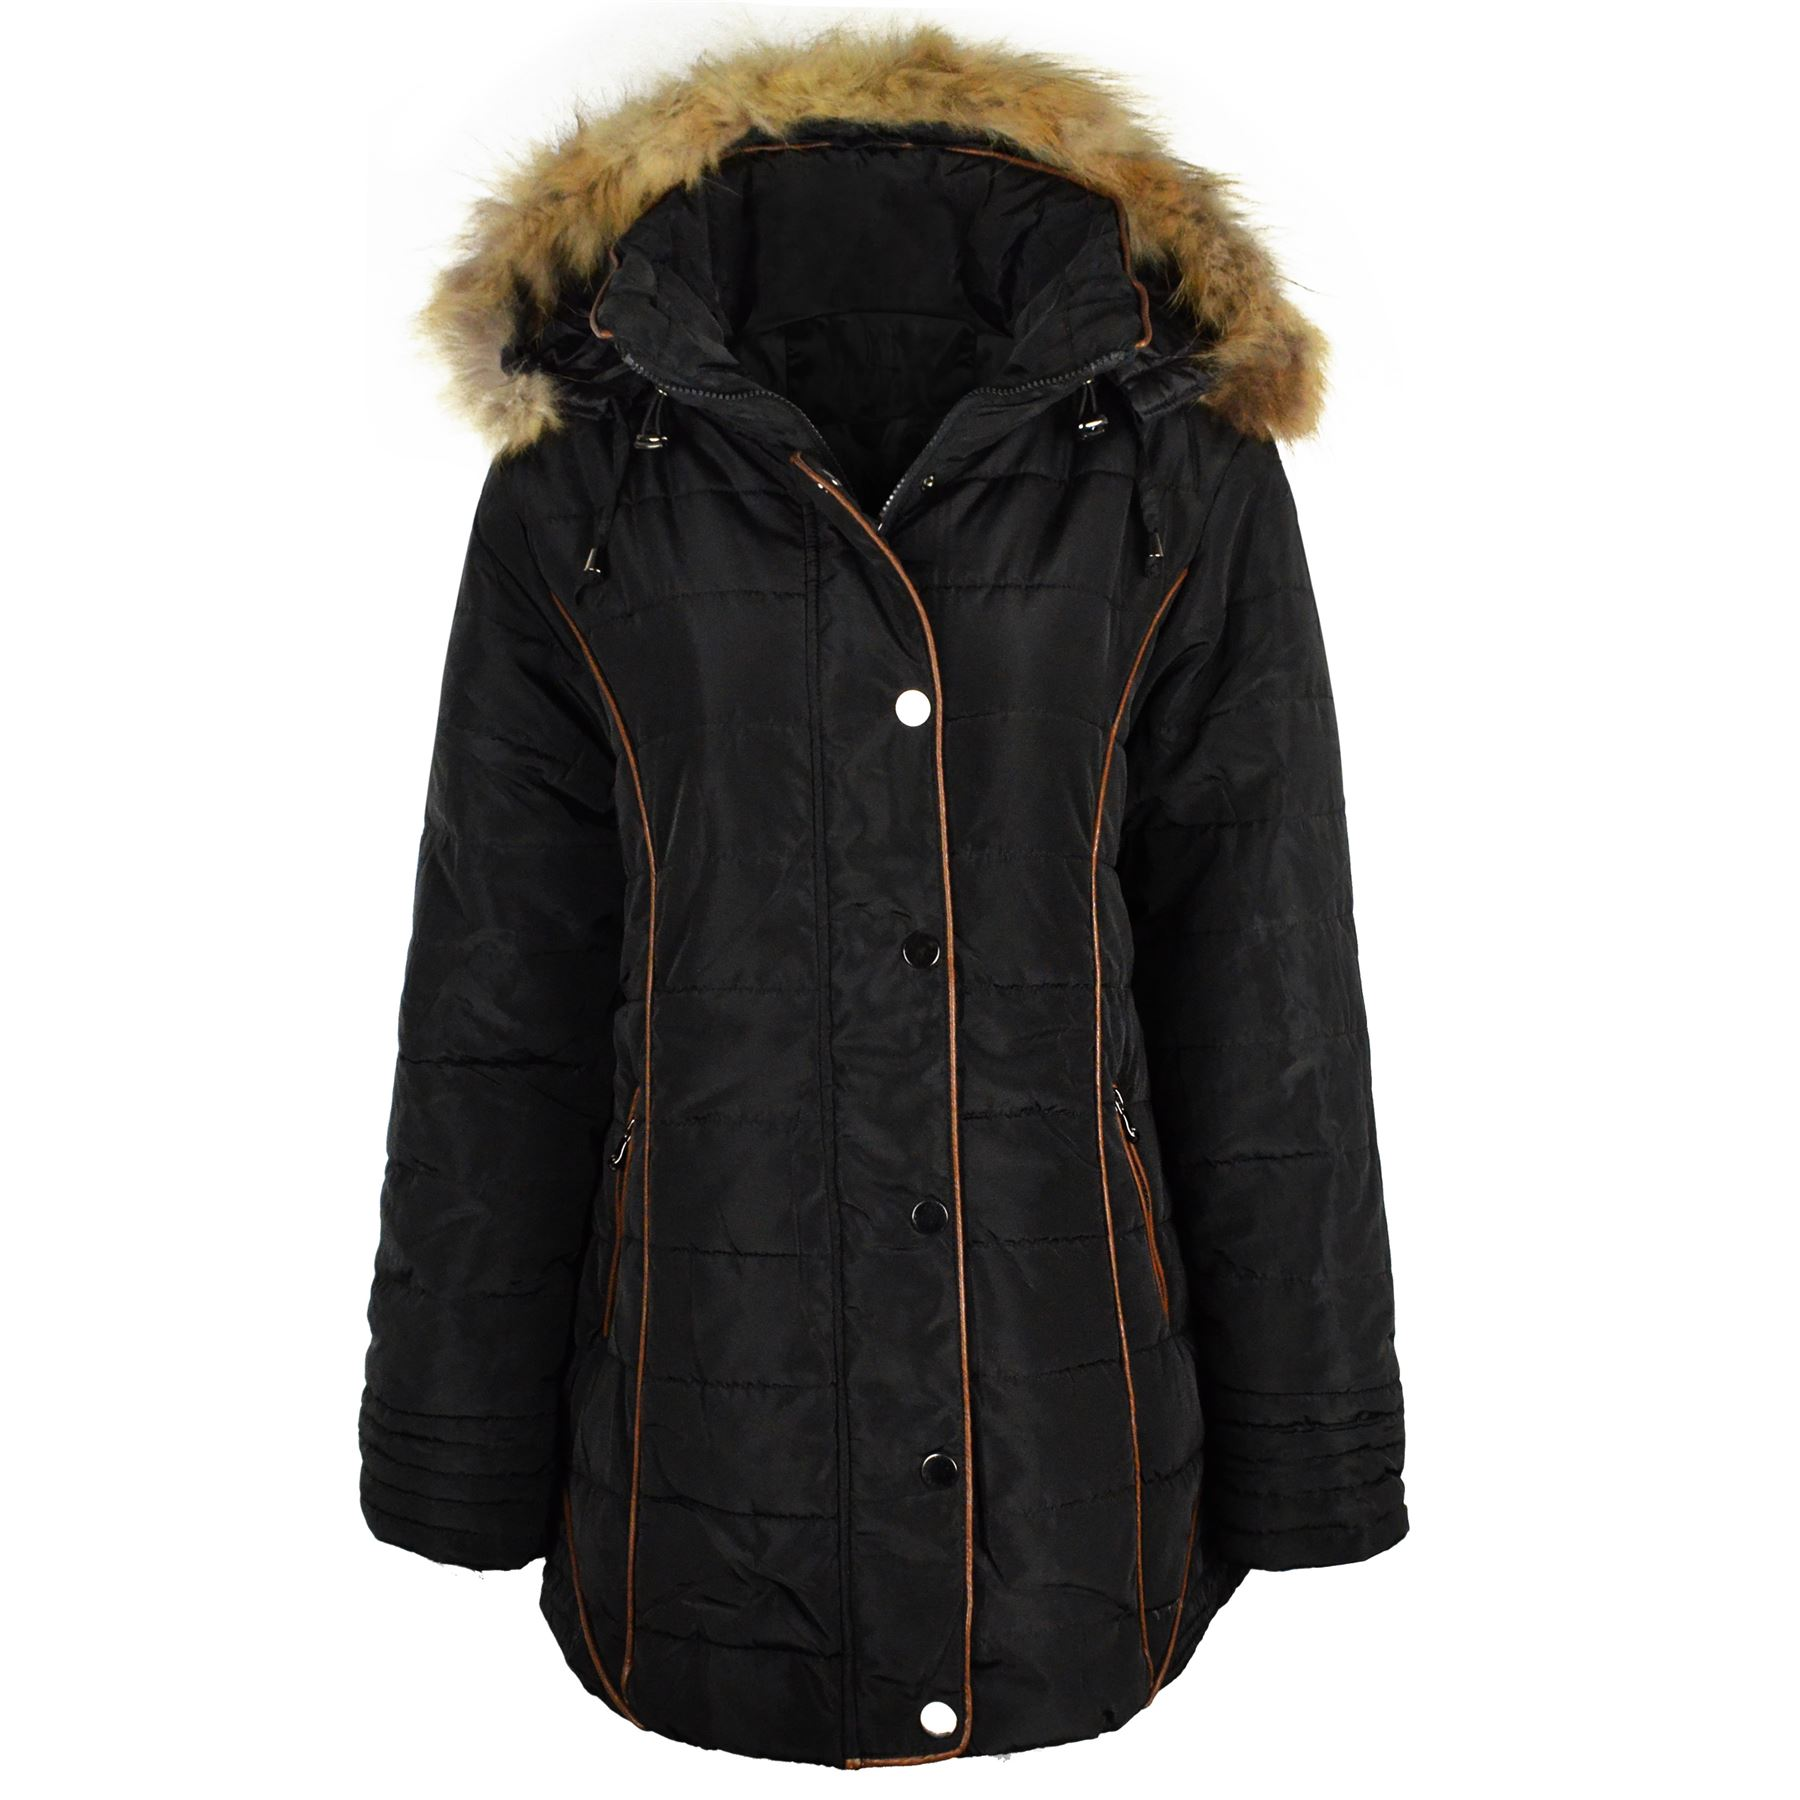 LADIES WOMENS PLUS SIZE QUILTED WINTER COAT PADDED PUFFA ...